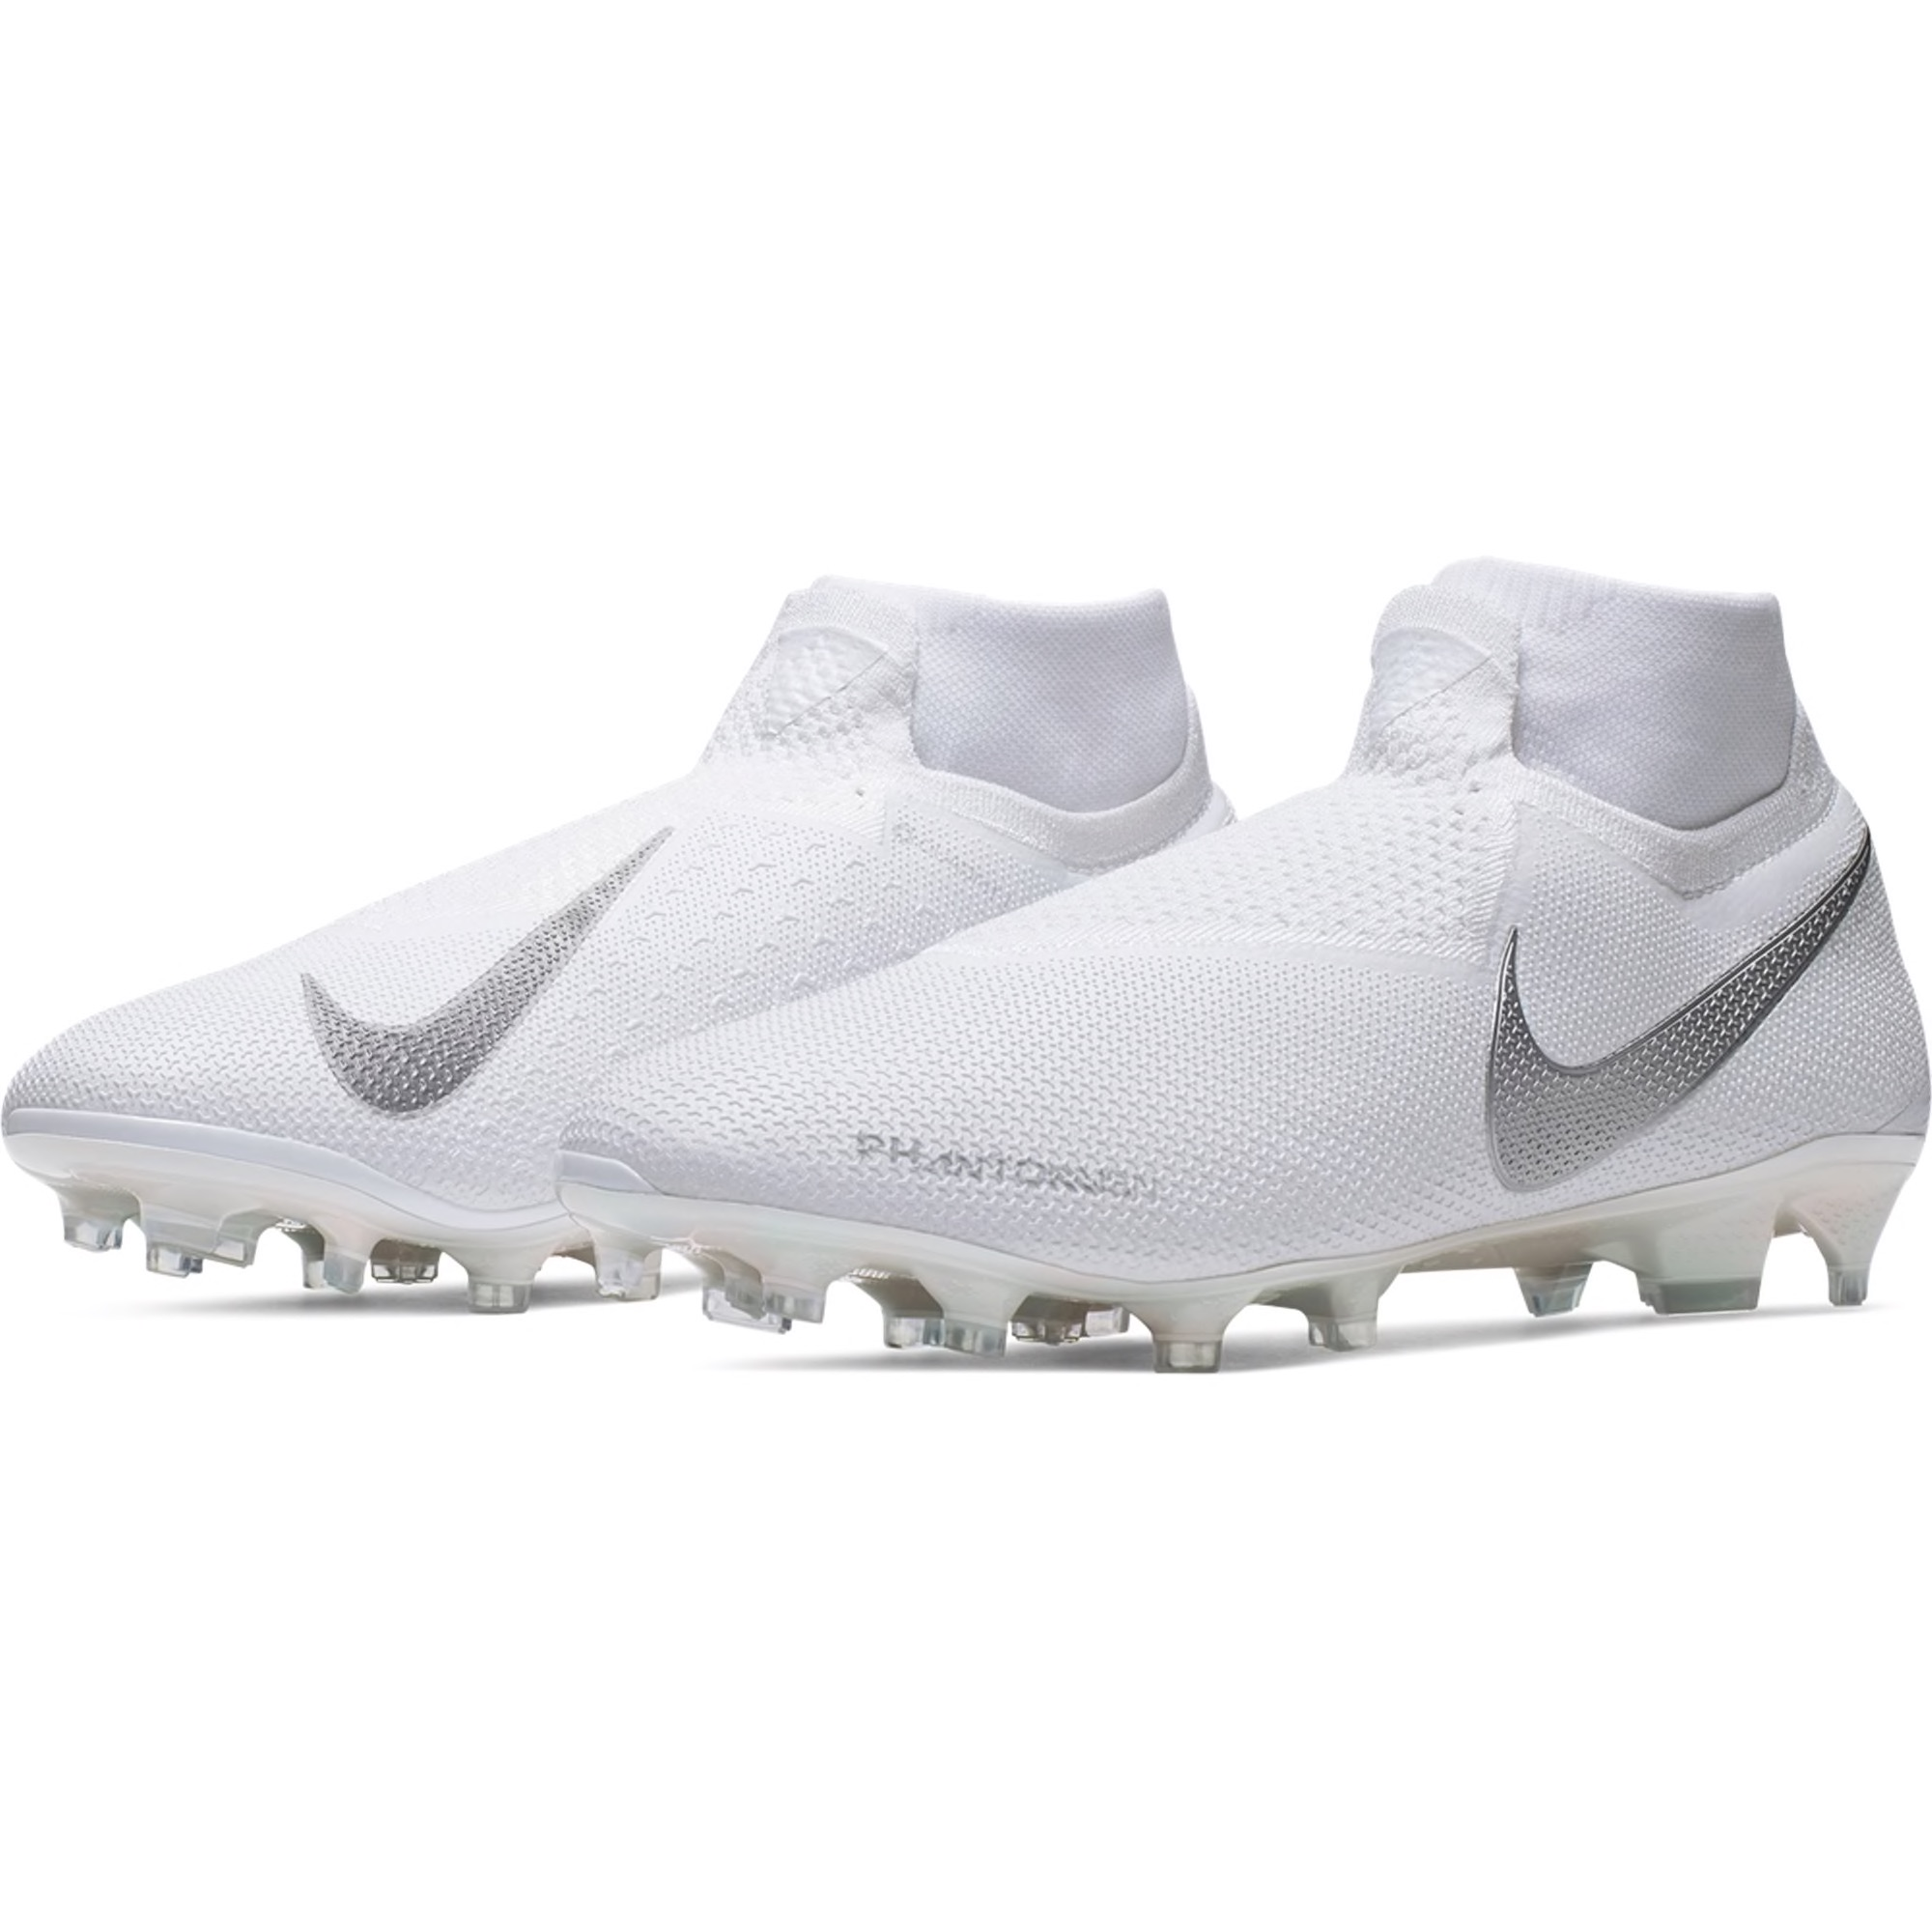 Nike Phantom Vision Elite DF FG Firm Ground Soccer Cleat - White / White / Metallic Platinum